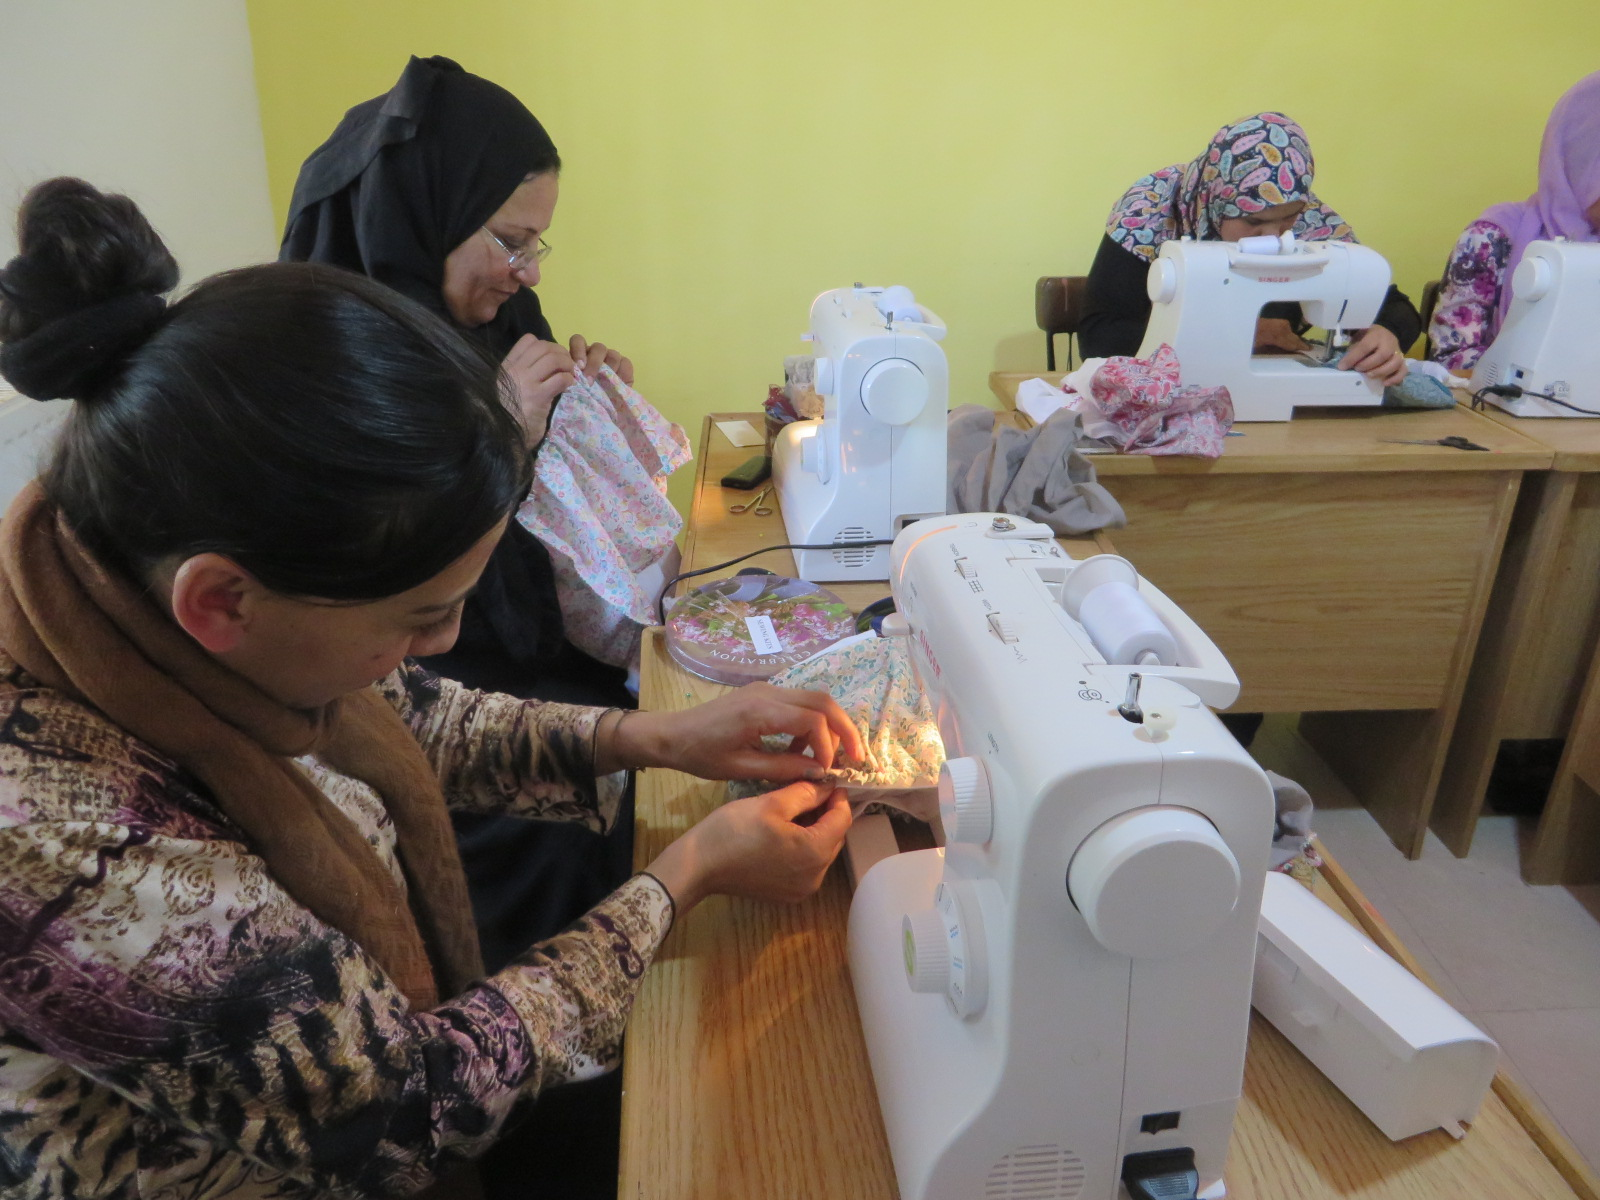 Learning skills is an important part of GHNI's work with refugees